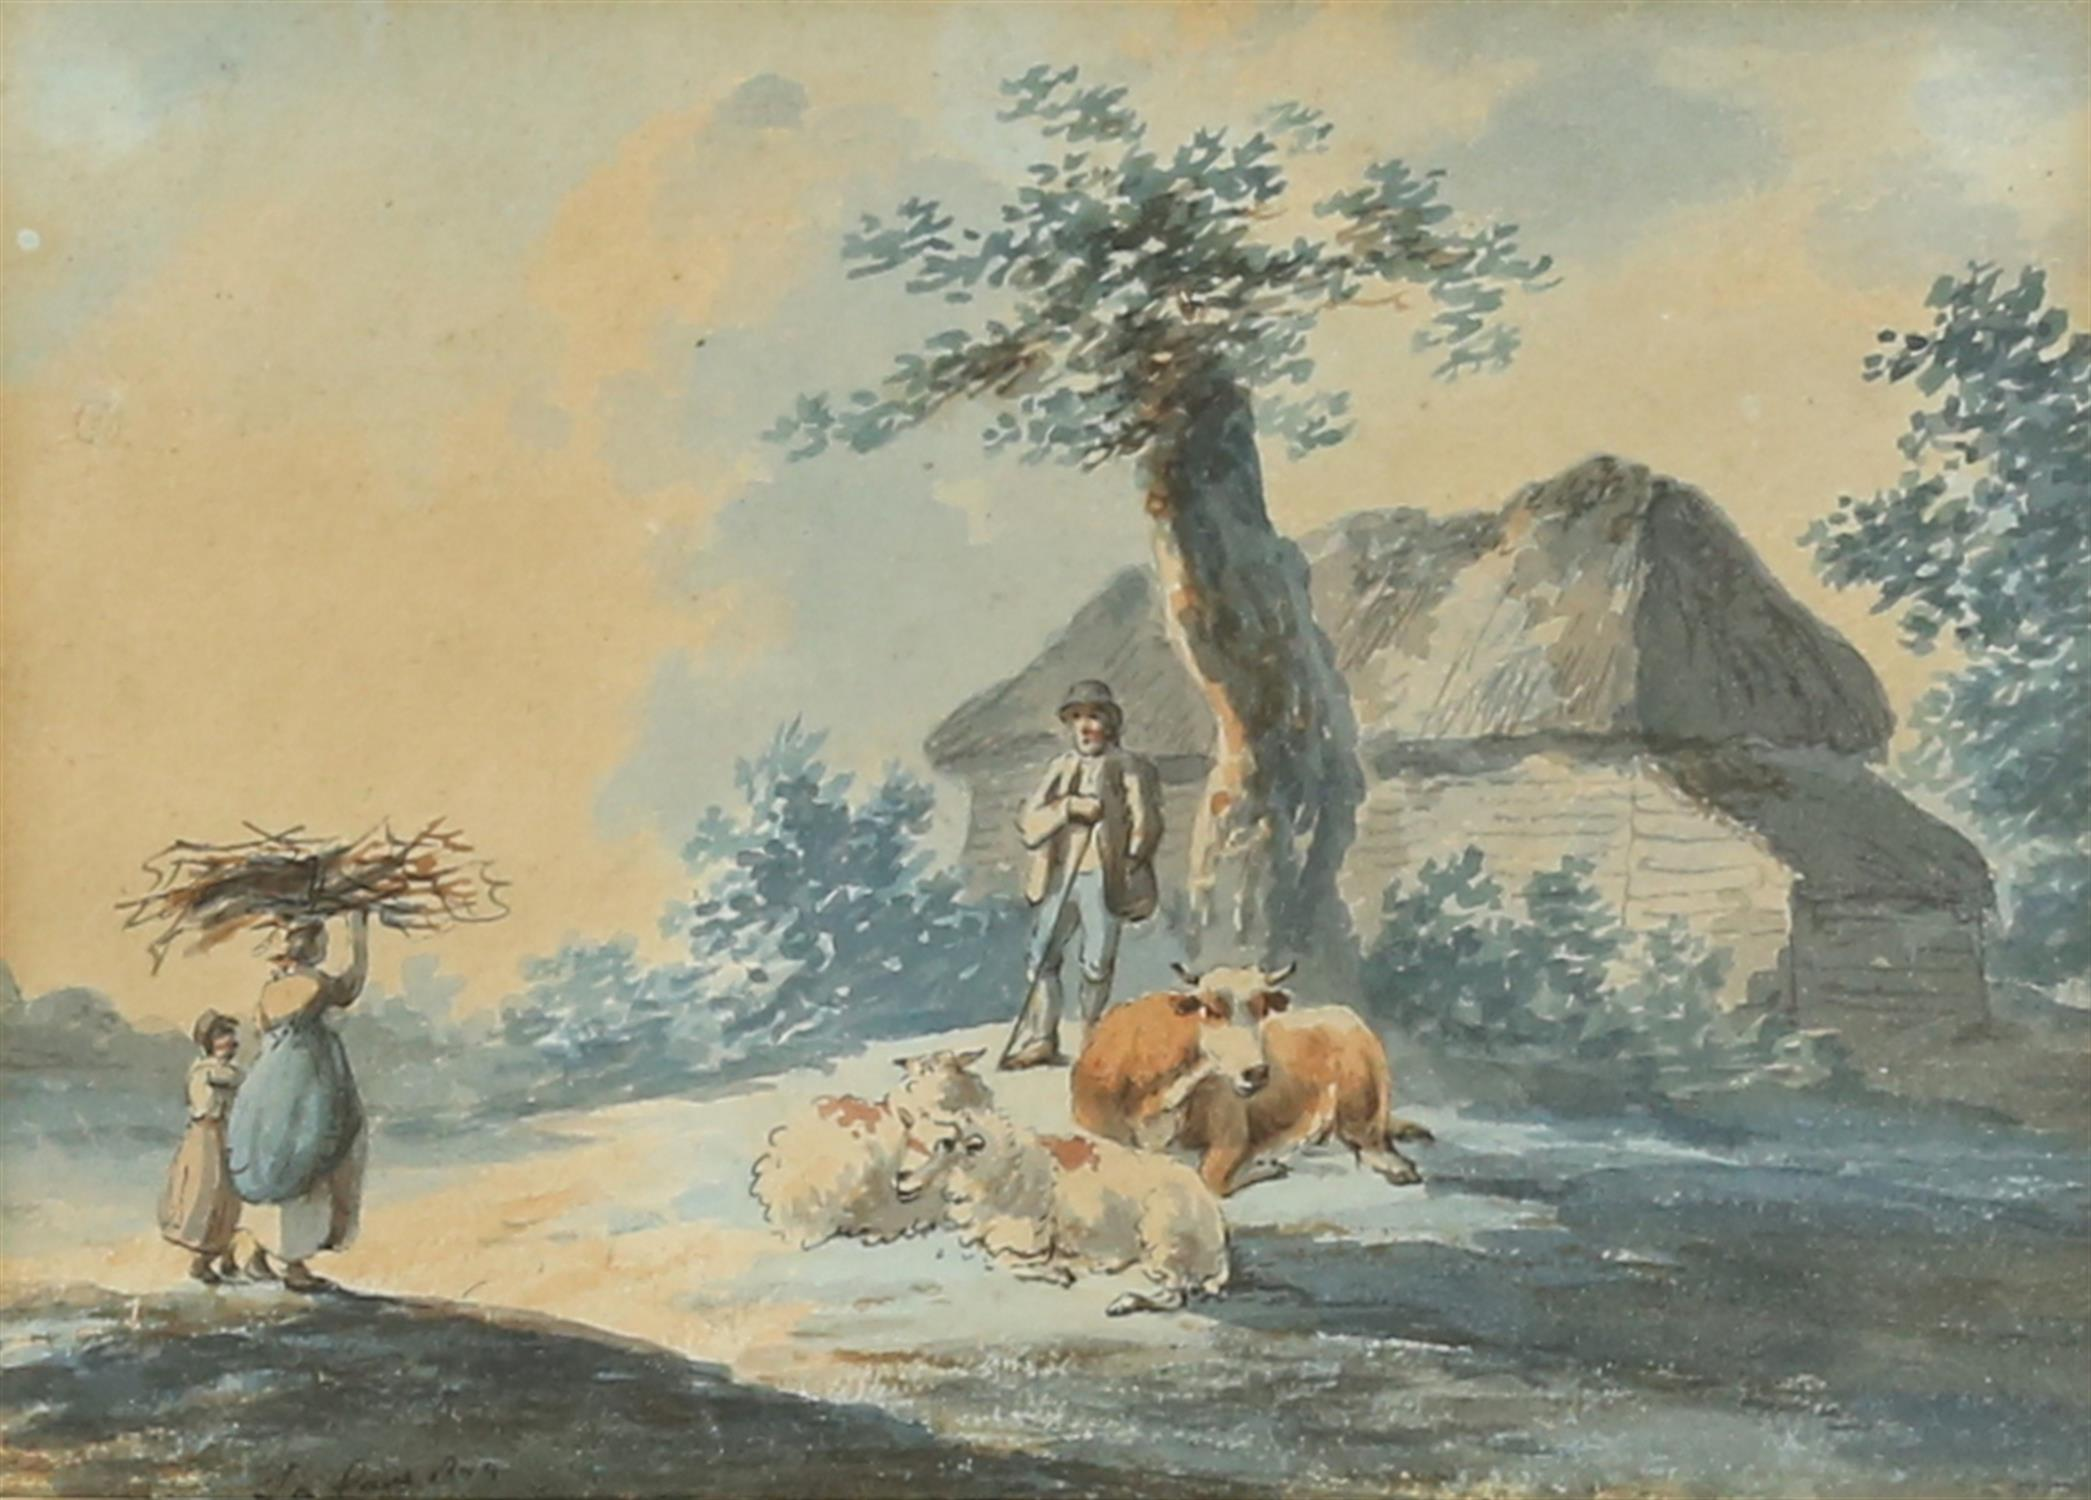 Peter La Cave, act. c. 1769-1816, 'Shepherd conversing with woman and child gathering twigs',